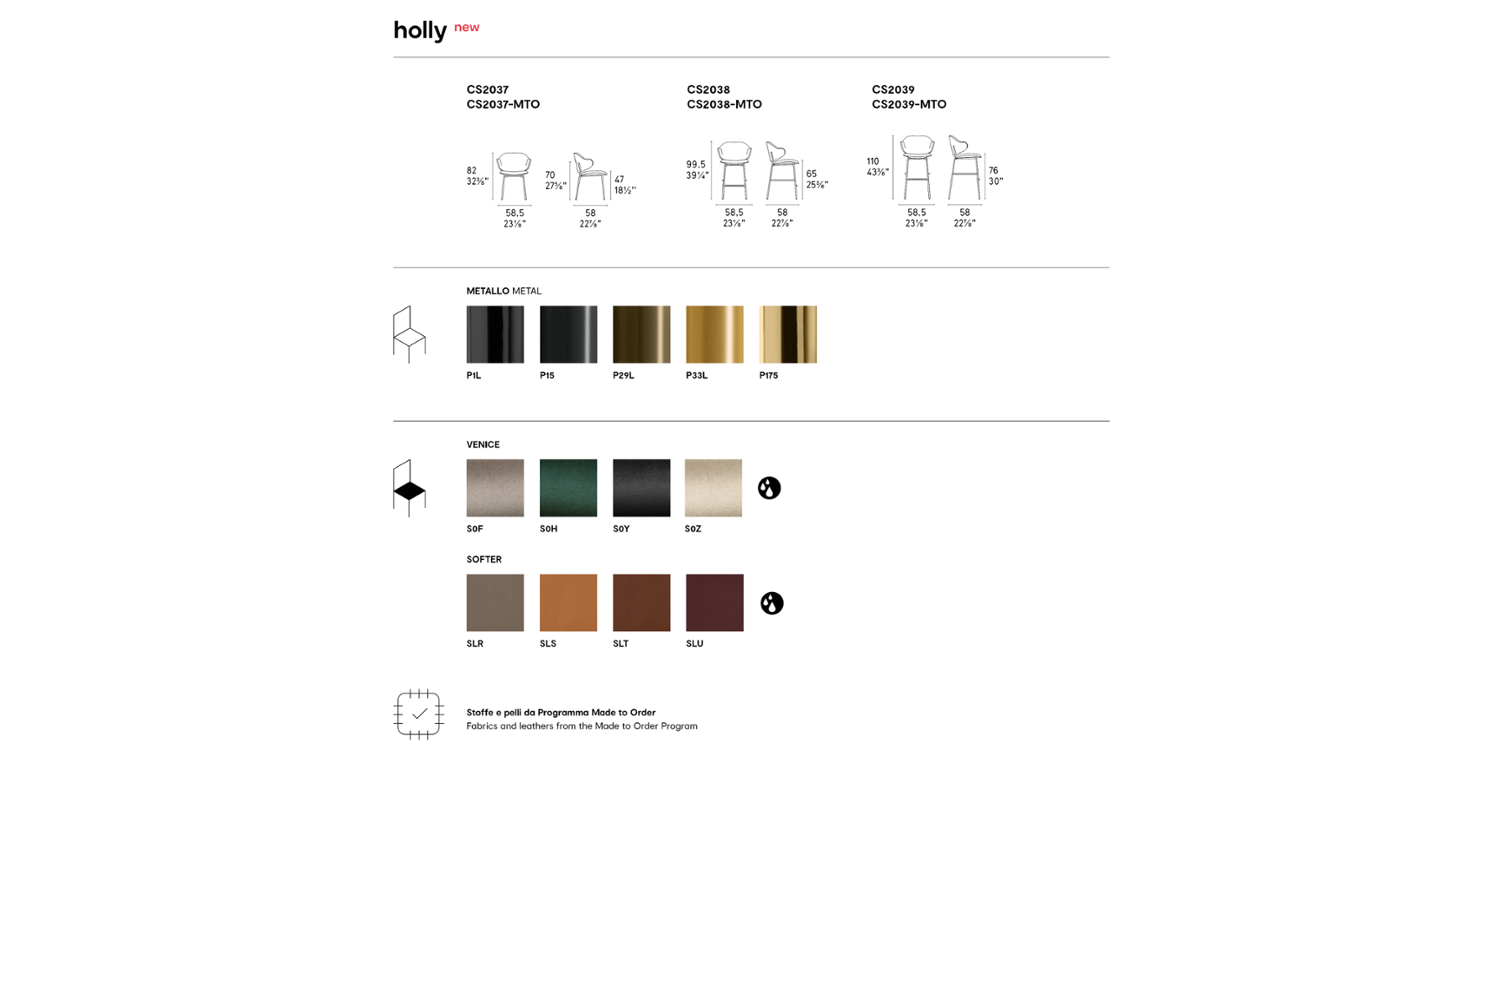 HOLLY 20SCHEMATIC 20CALLIGARIS HOLLY%20SCHEMATIC%20CALLIGARIS%20copy.png